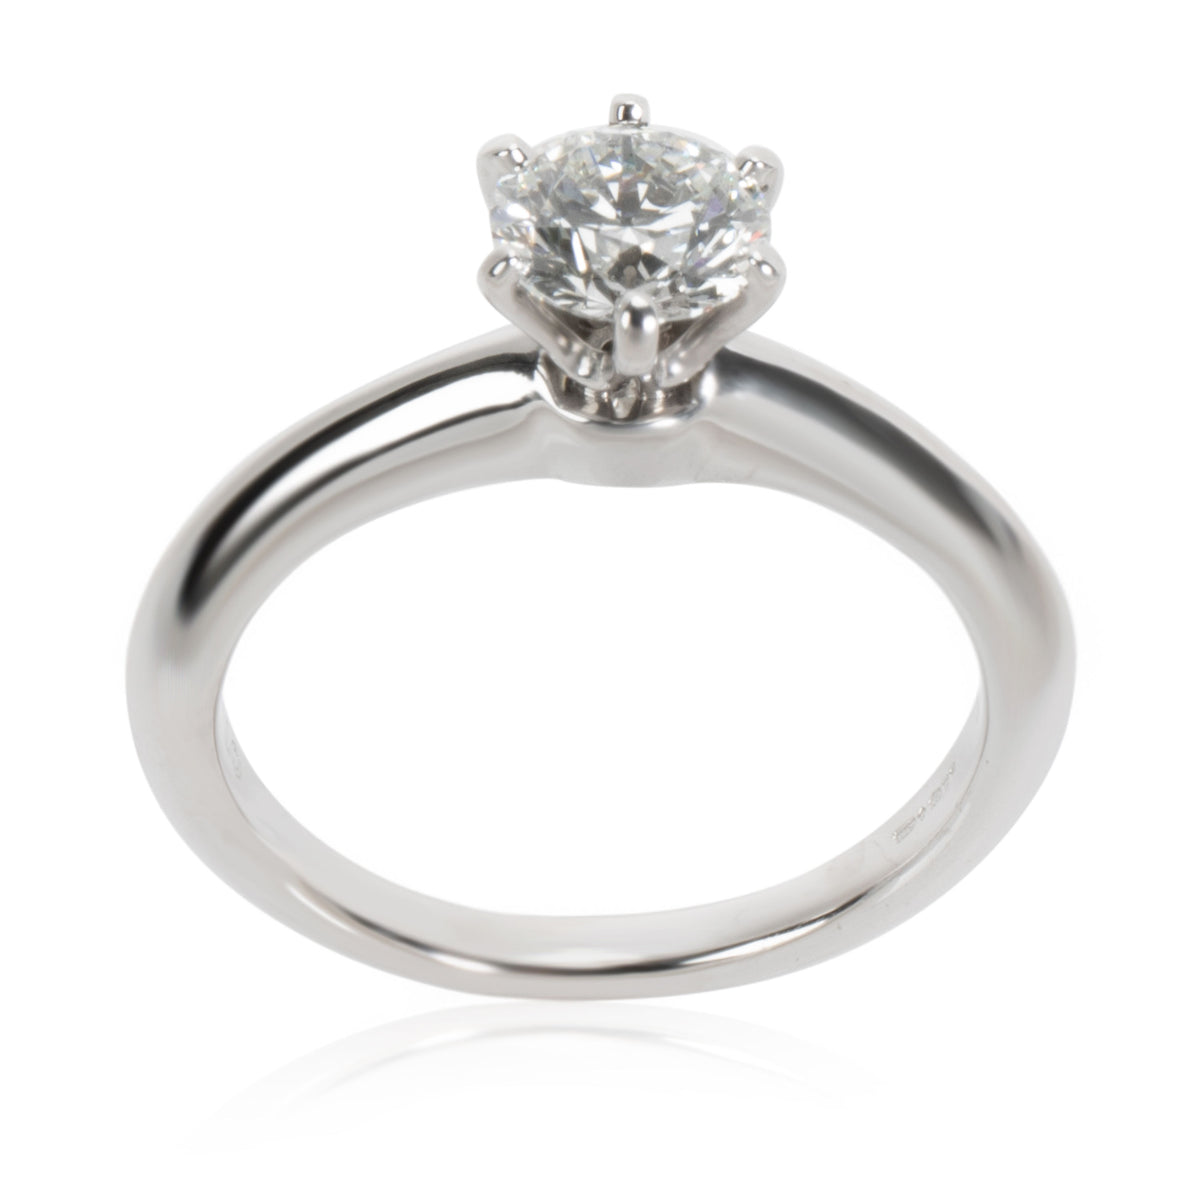 Tiffany & Co. Diamond Engagement Ring in Platinum (0.71 ct E/VVS2)